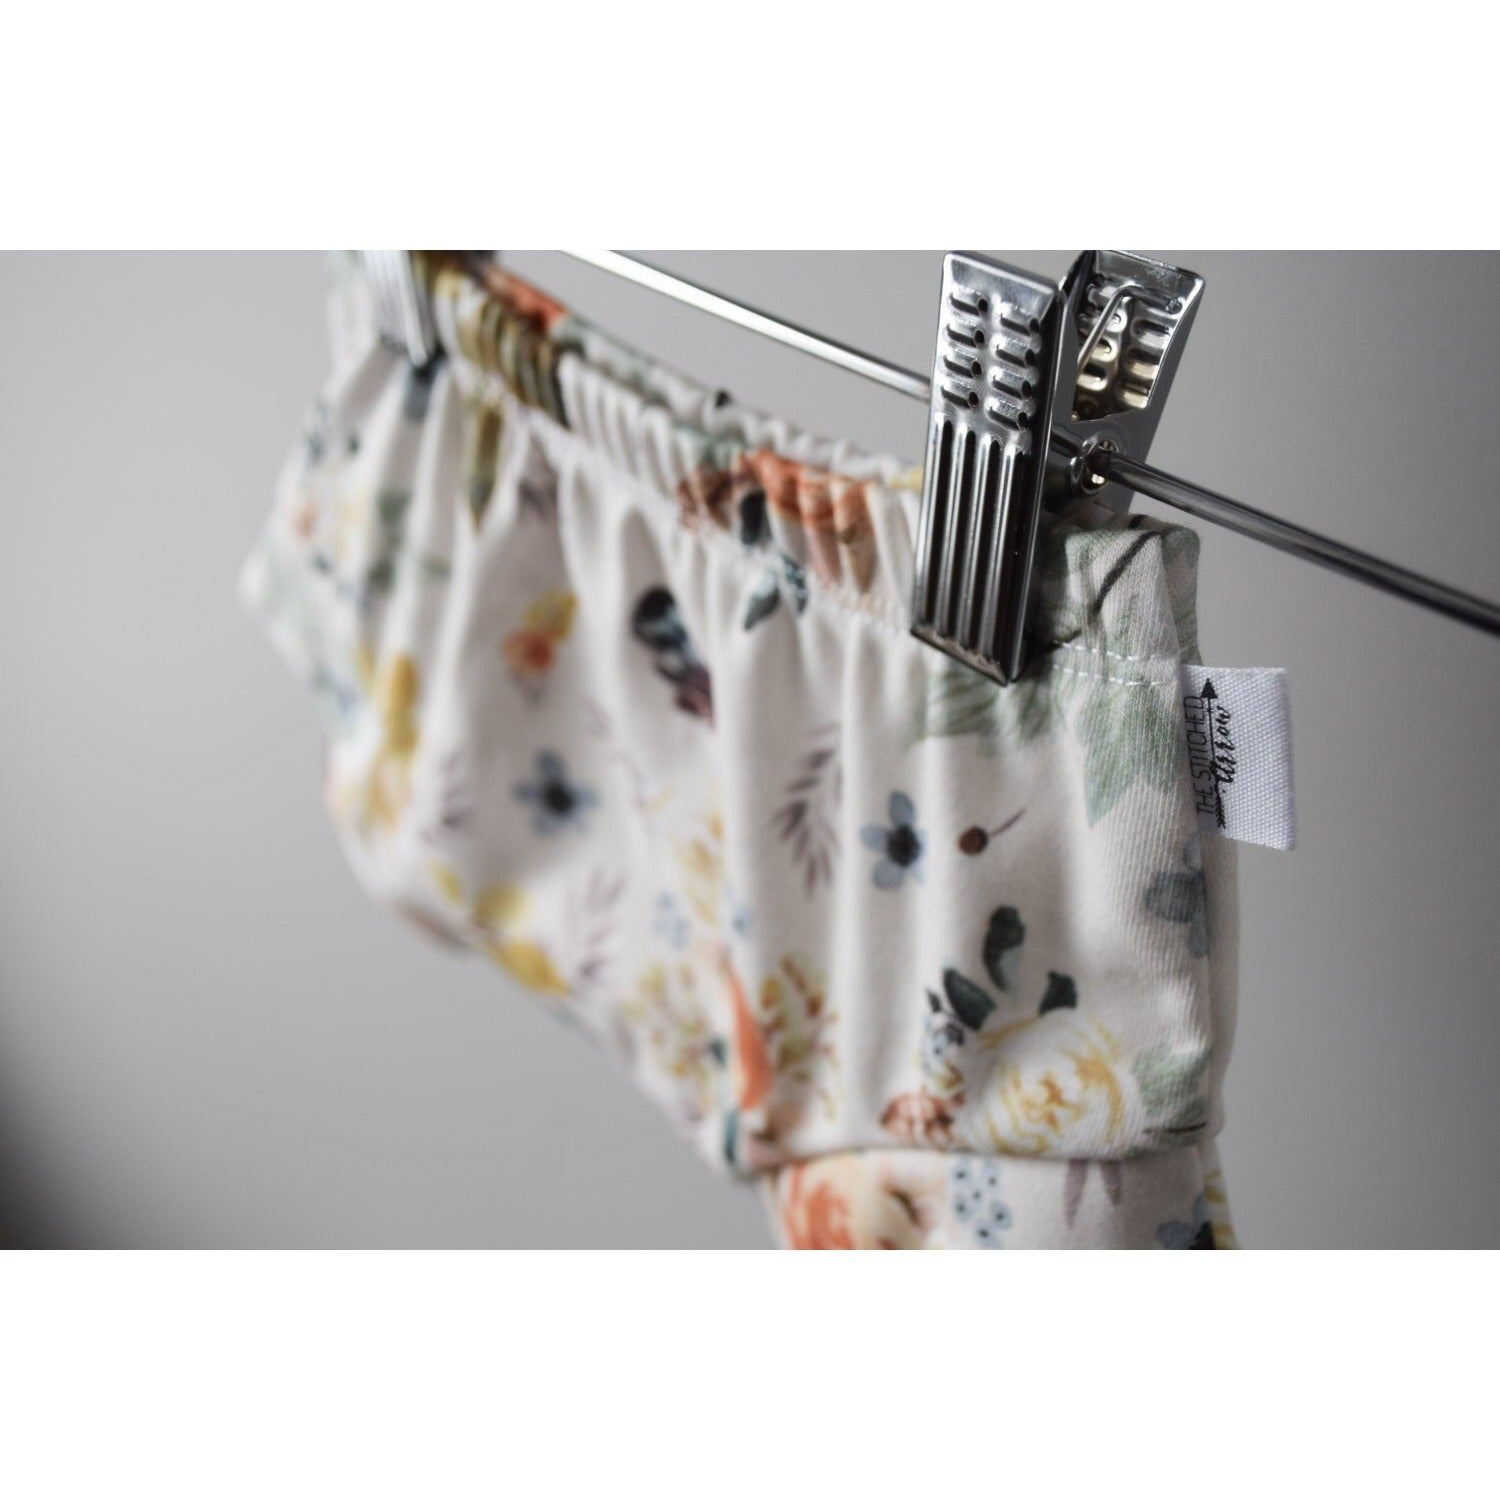 VINTAGE FLORAL 100% ORGANIC COTTON SHORTIES - Boutique Wanderlust